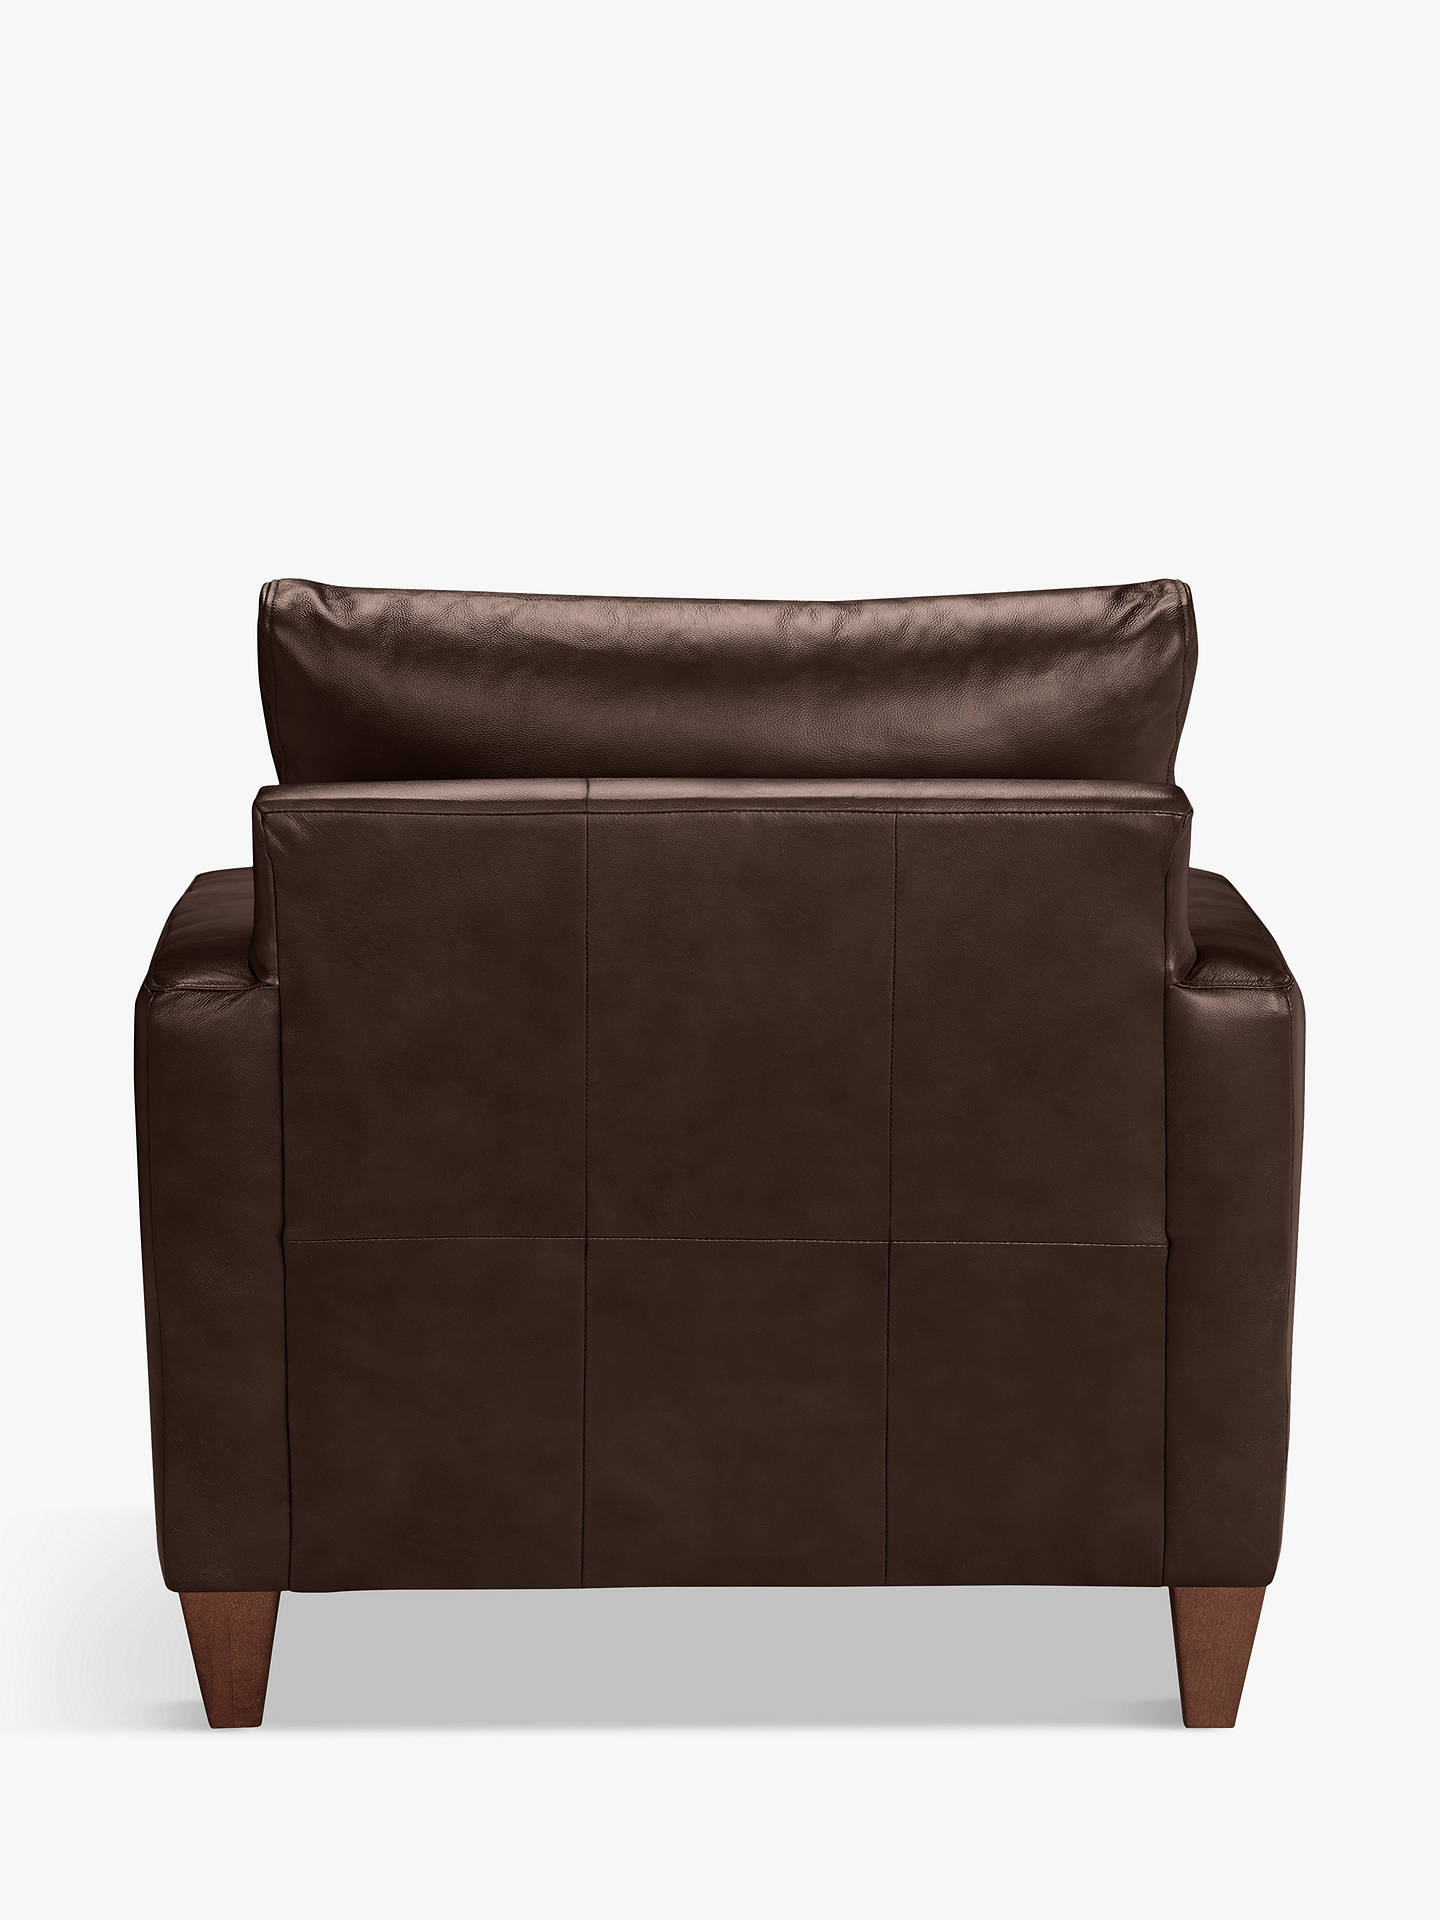 Buy John Lewis & Partners Bailey Leather Snuggler, Dark Leg, Contempo Dark Chocolate Online at johnlewis.com